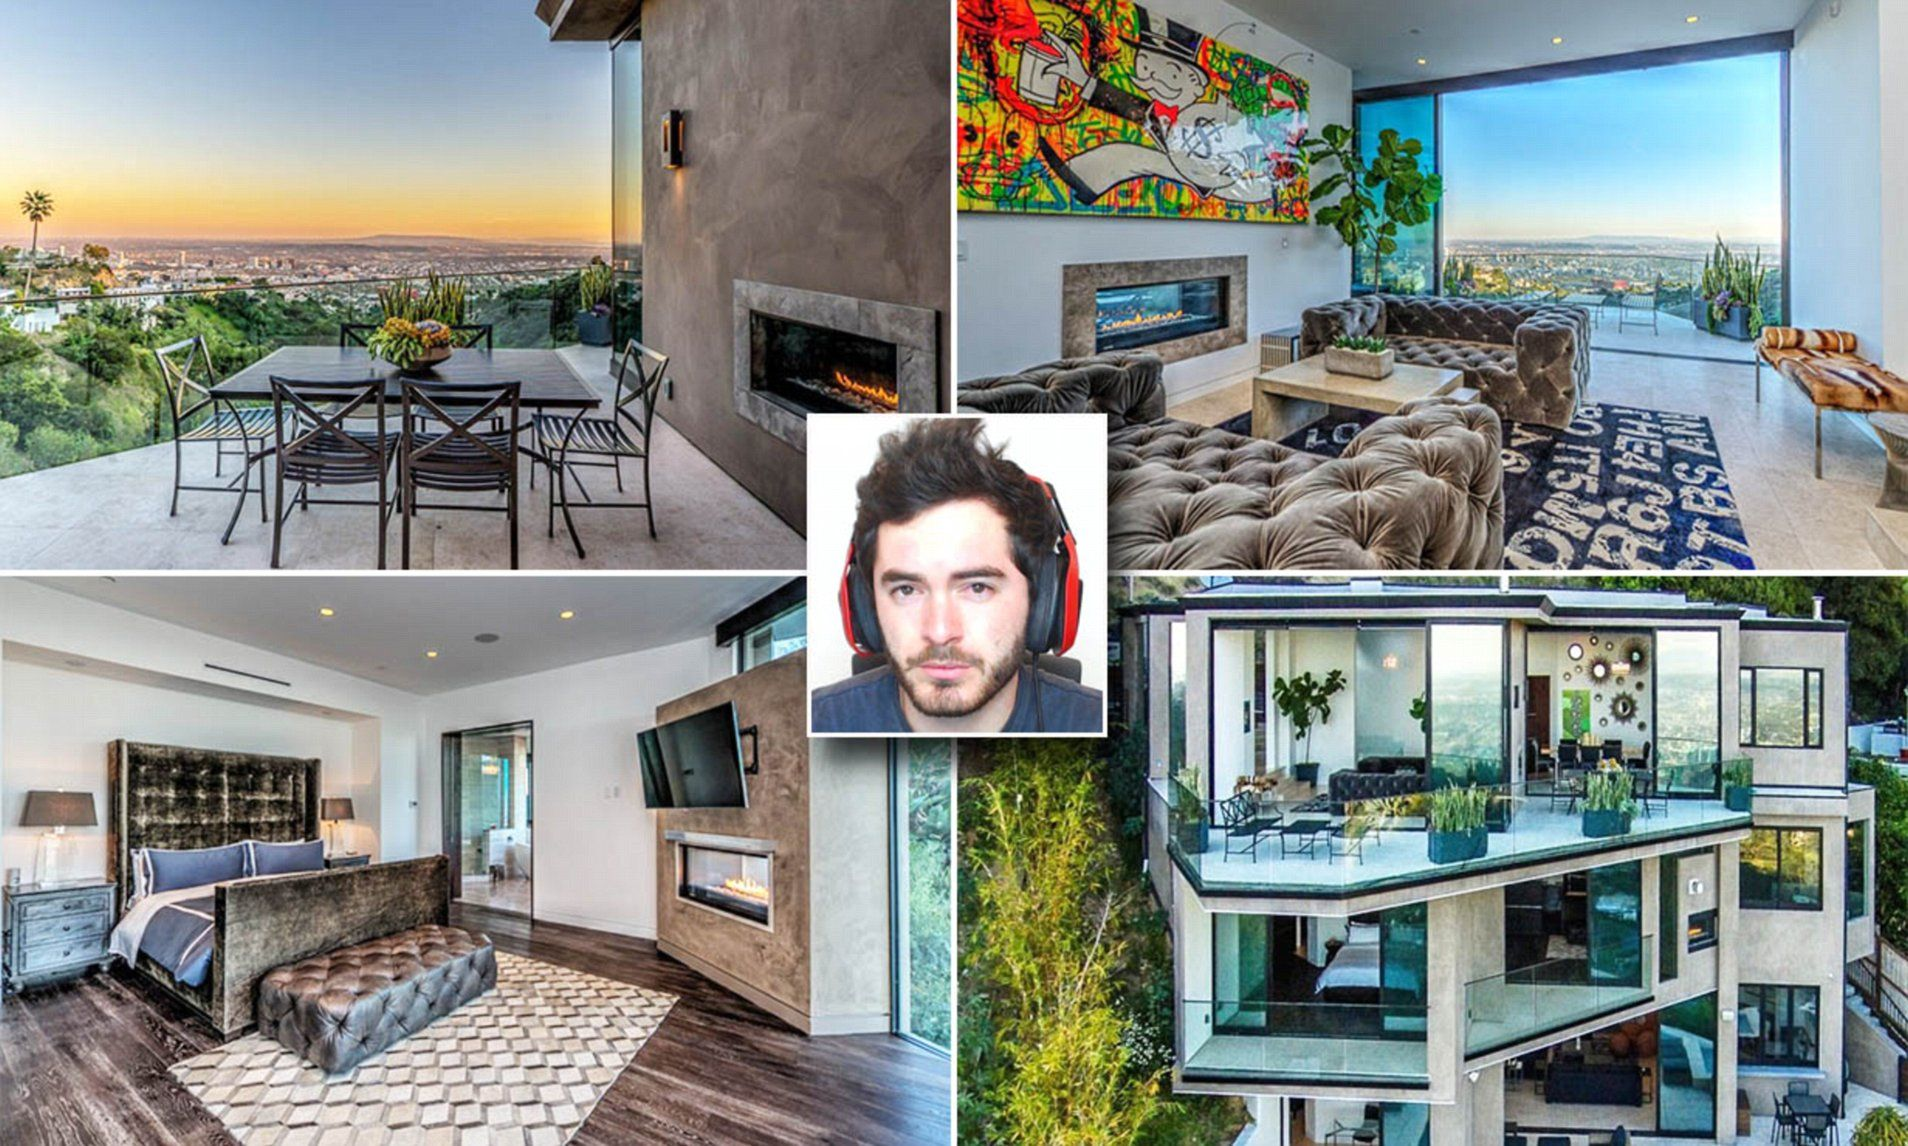 Youtube Star Buys Luxury Mansion In Hollywood Hills For 4 5million Crazy Houses Mansions Mansions Luxury